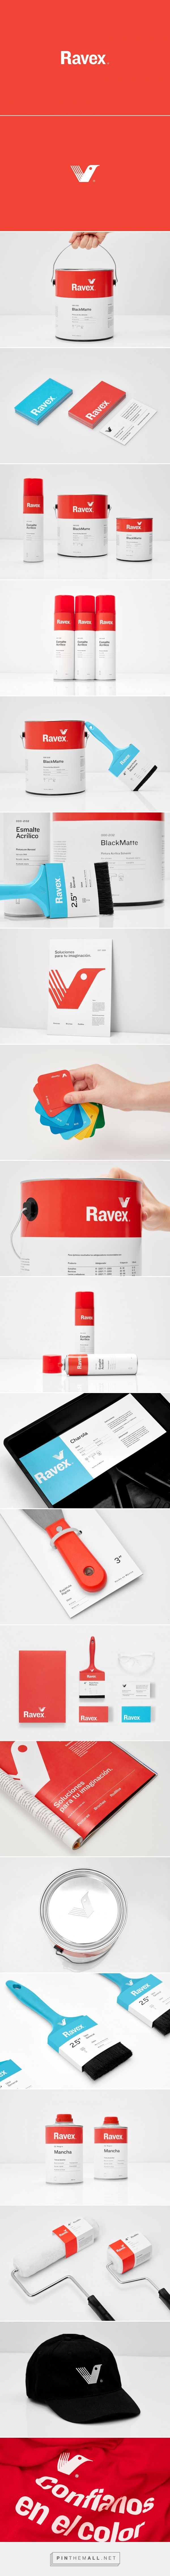 Ravex – Visual Journal... - a grouped images picture - Pin Them All